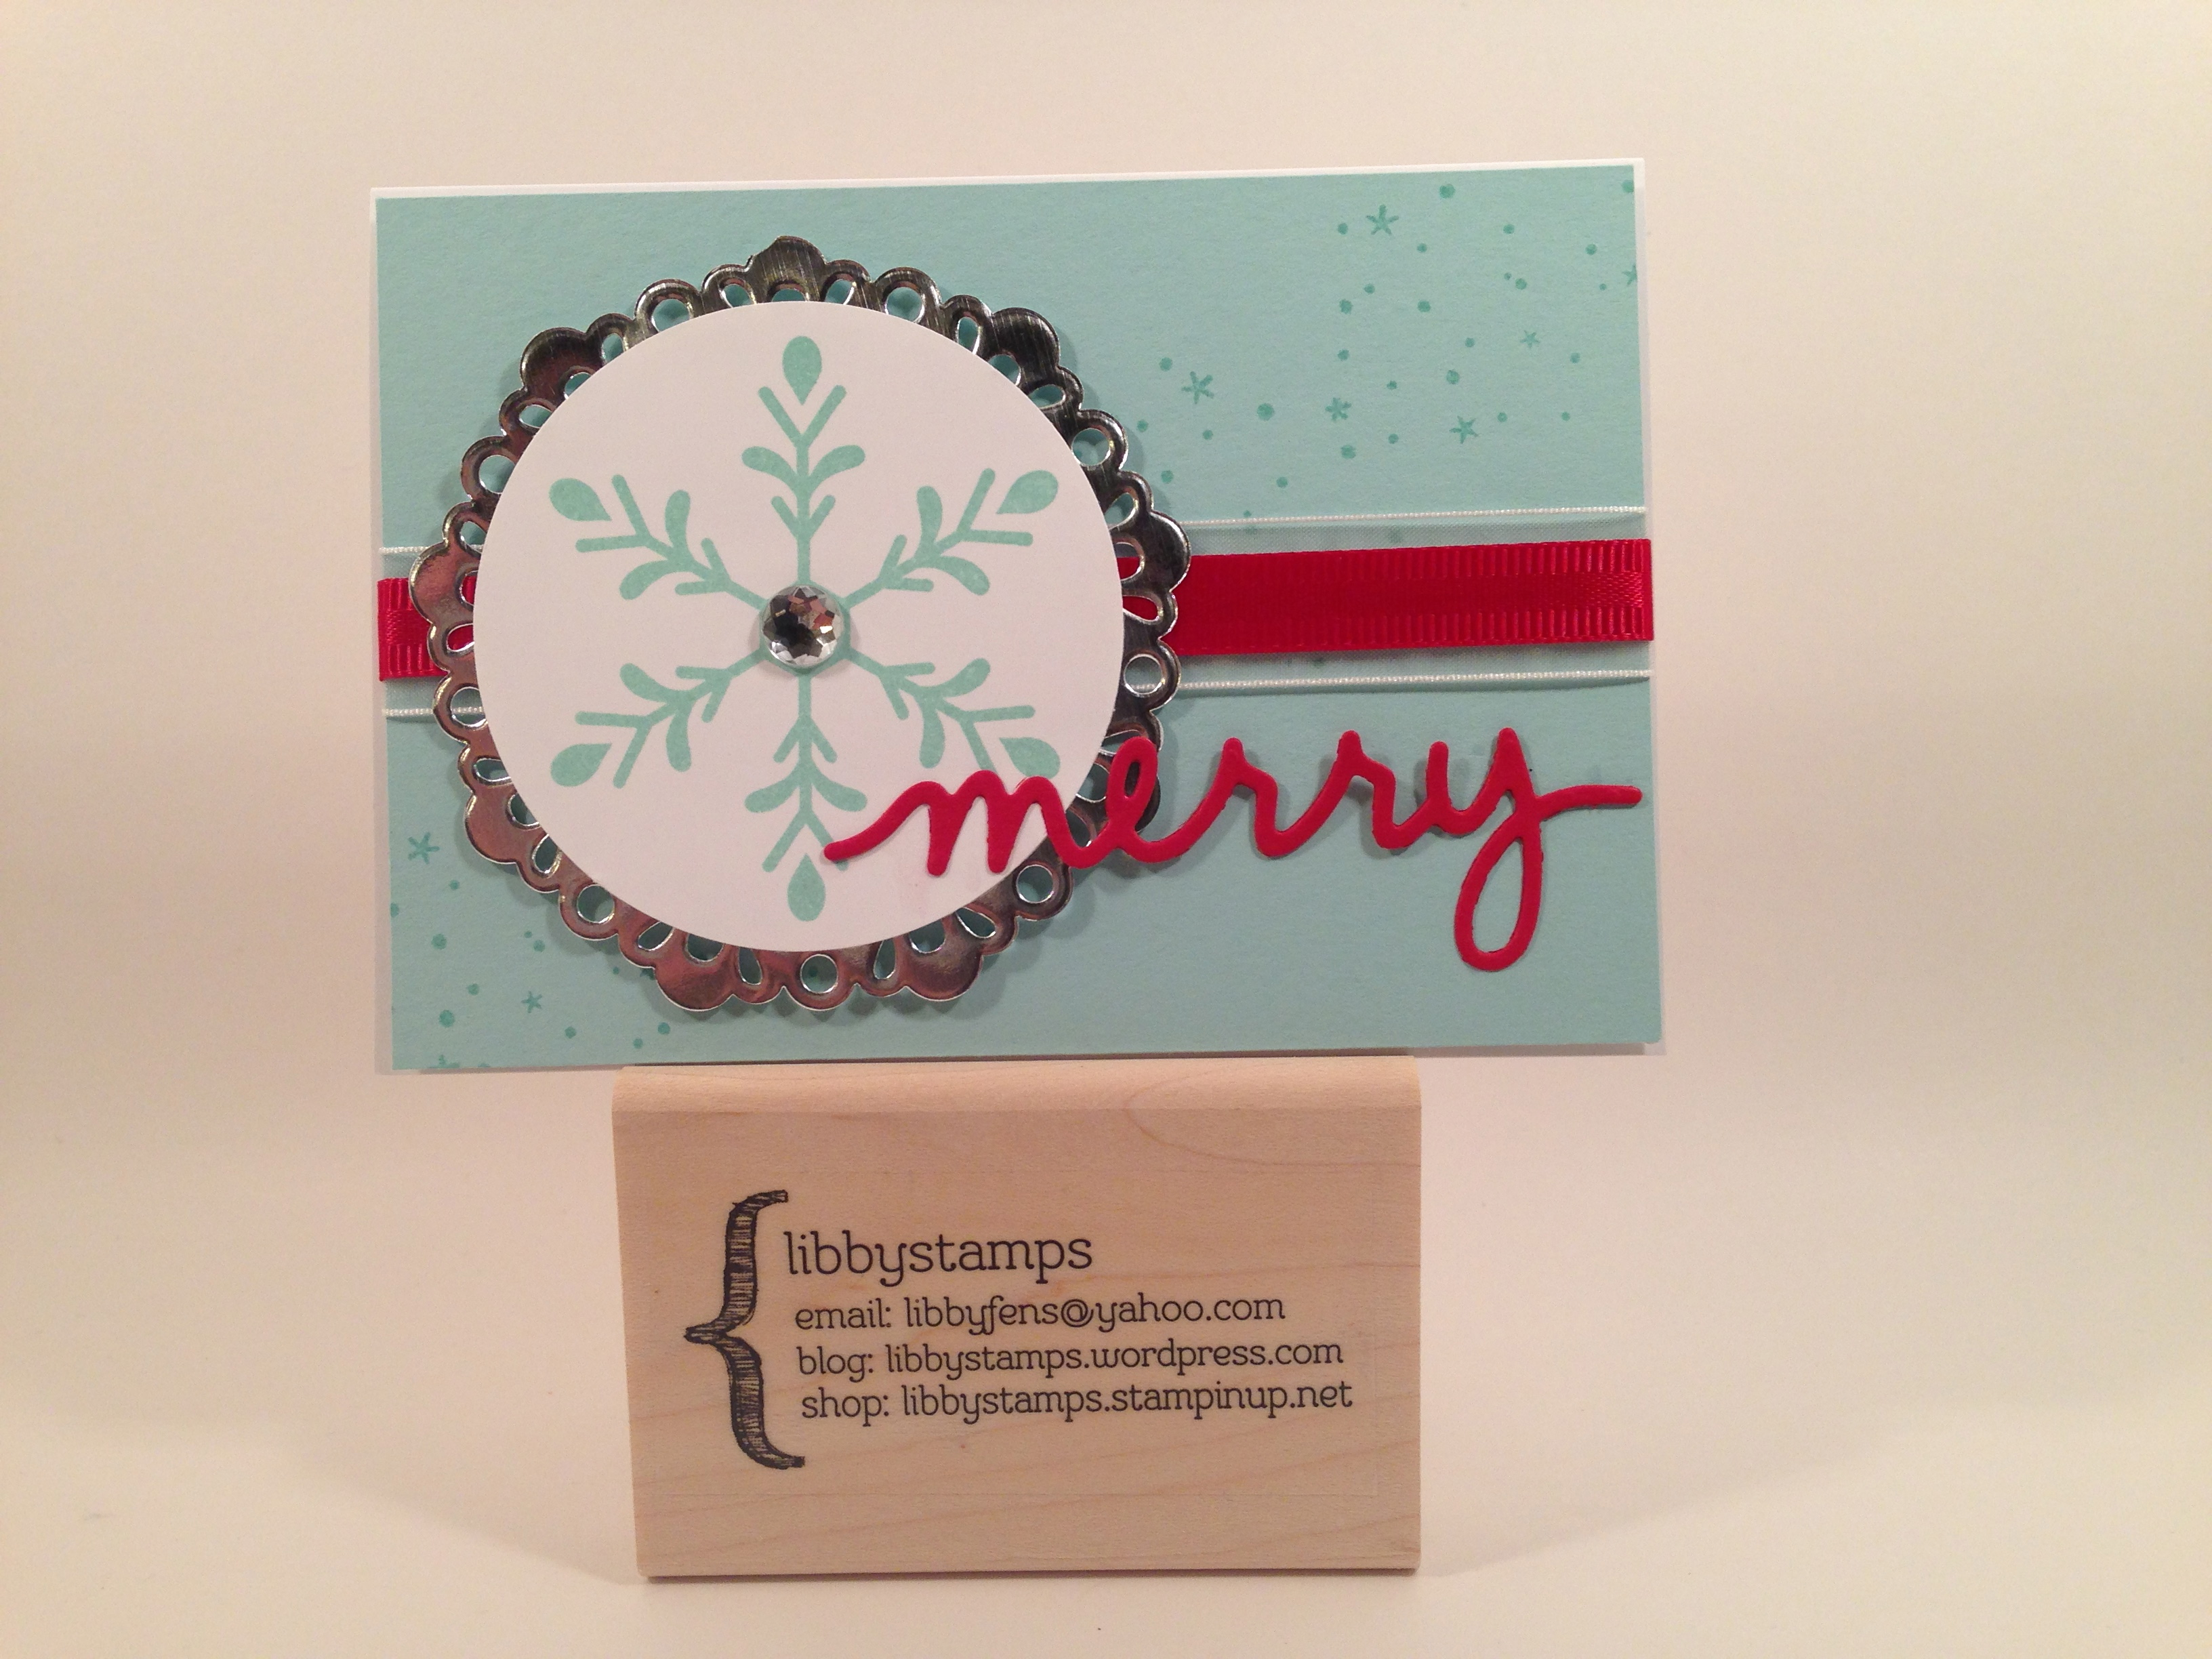 libbystamps, Stampin Up, Holly Jolly Greetings, Christmas Greetings Thinlits, Large Rhinestone Basic Jewels, 2 1/2 Circle Punch, Metallic Foil Doilies, Whisper White Note Card & Envelopes, Real Red 3/8 Satin Woven Ribbon,